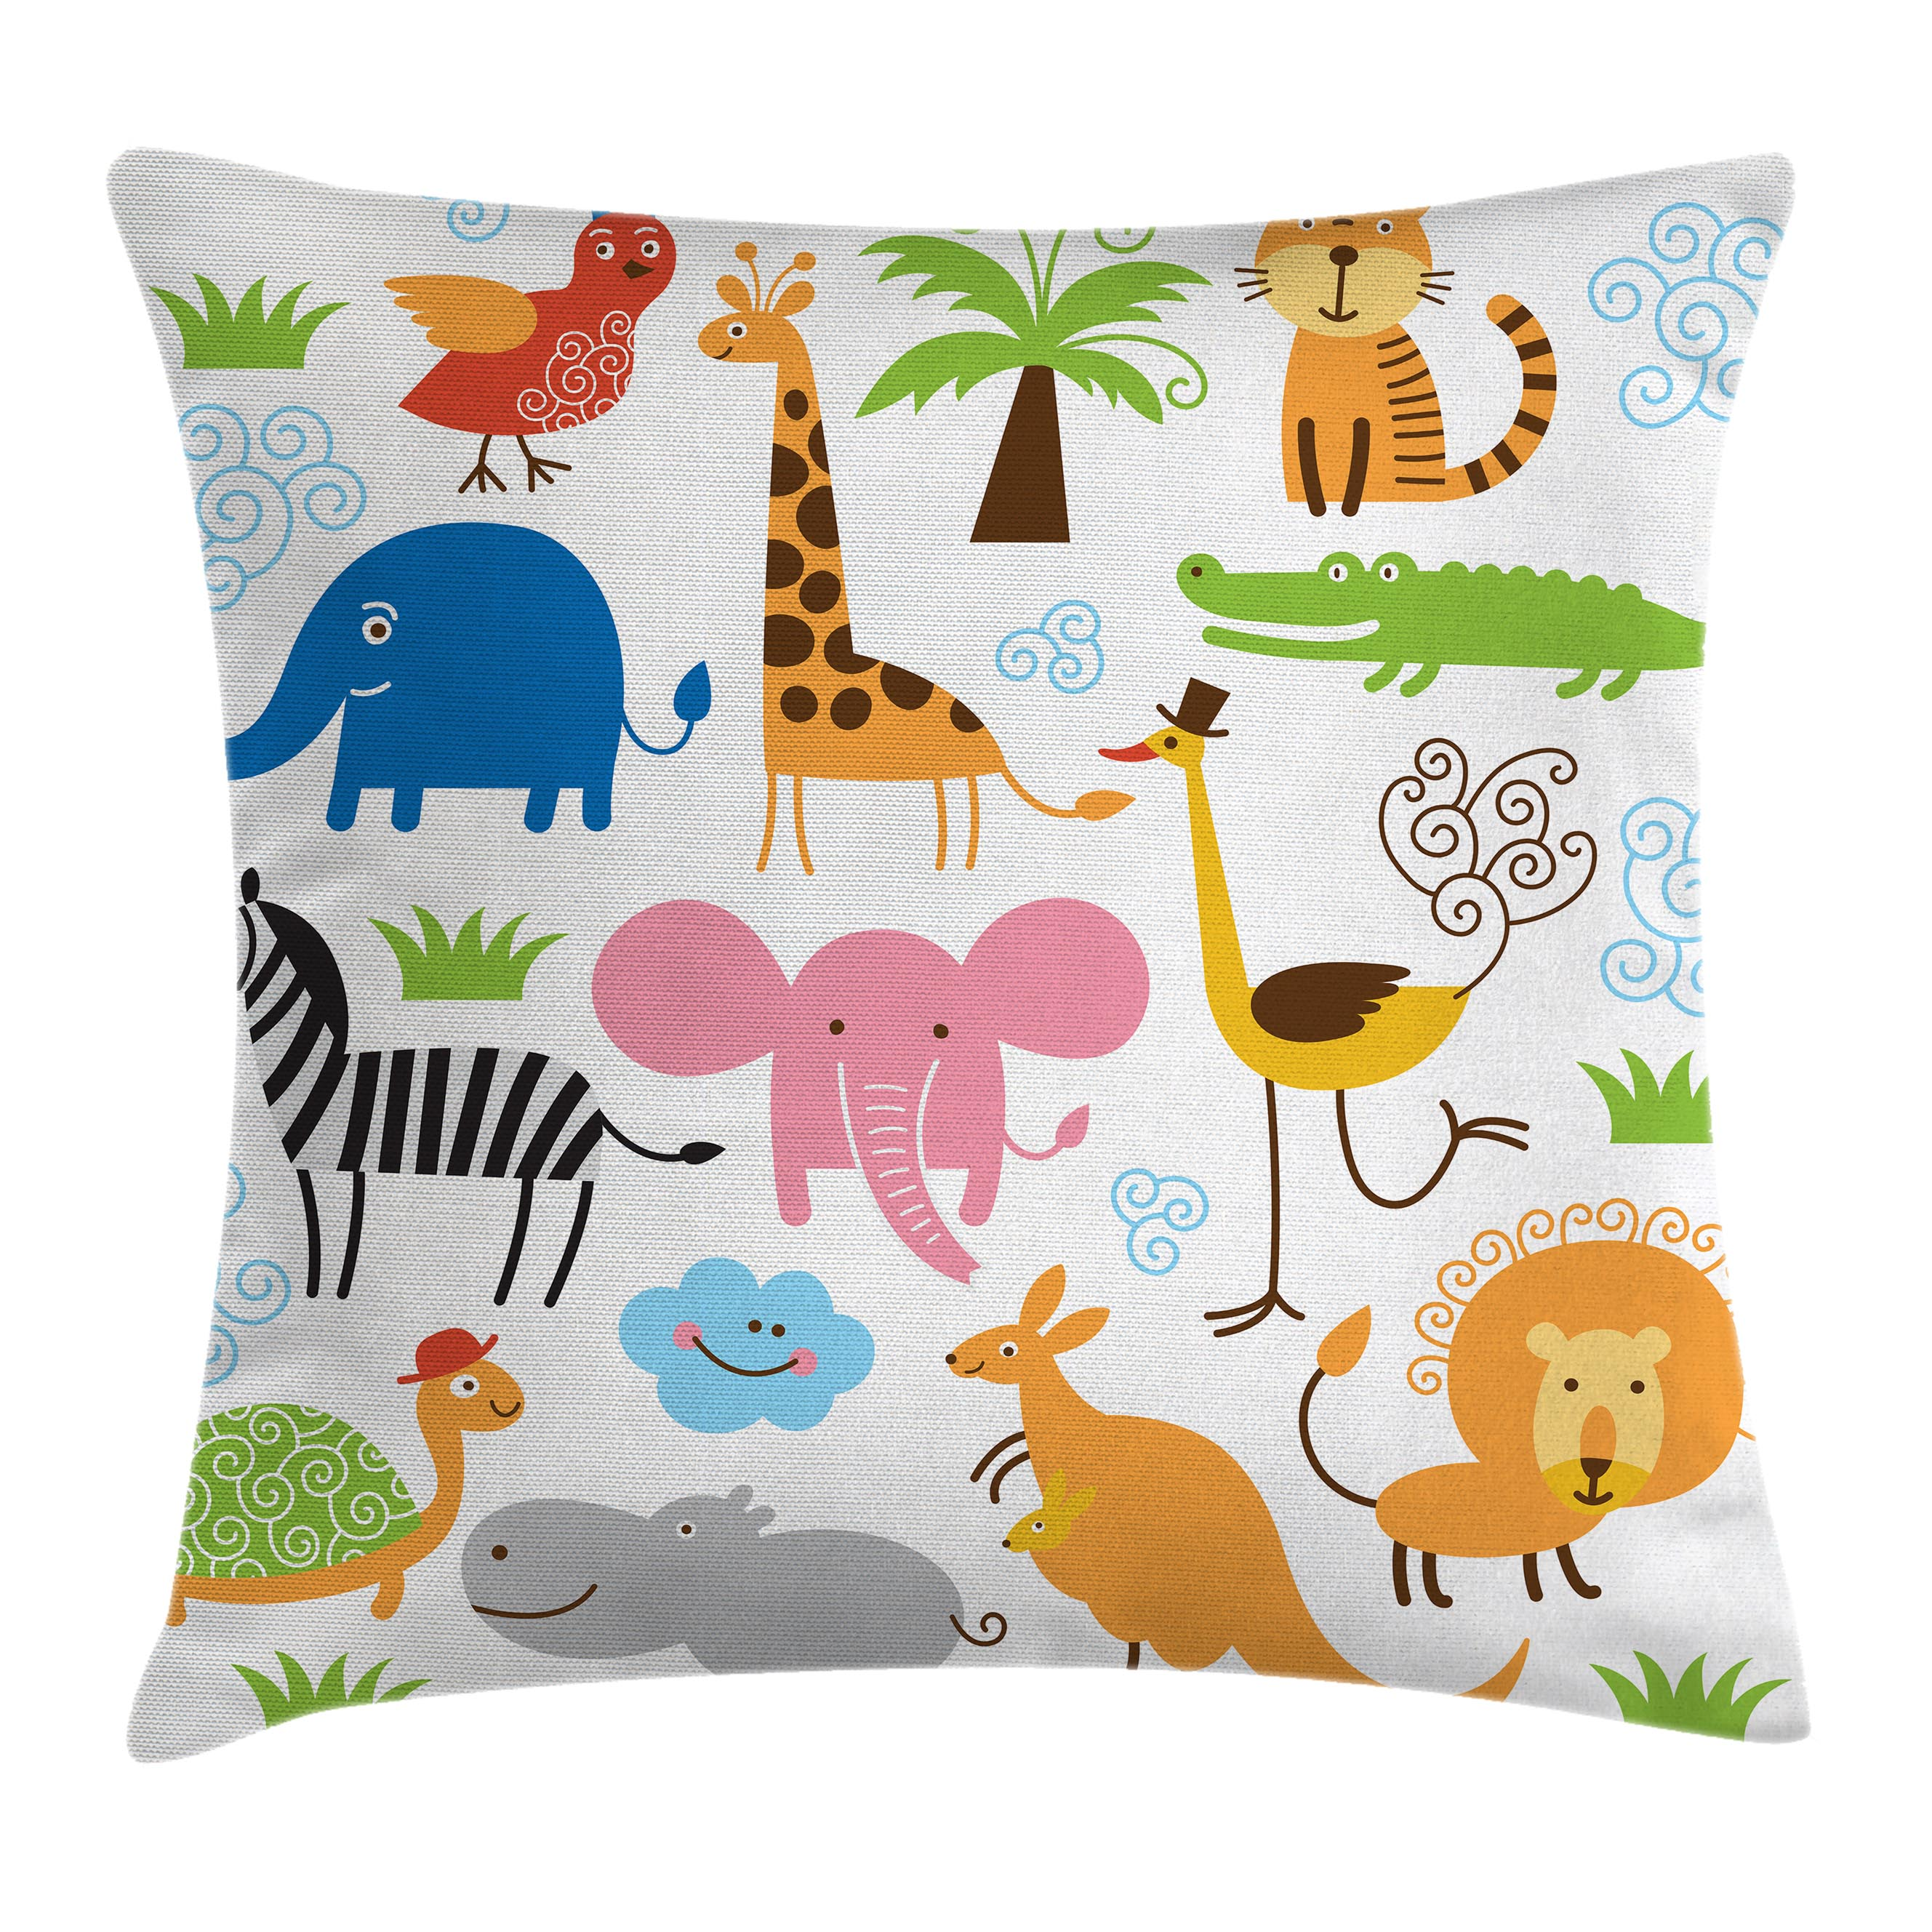 Animal Throw Pillow Cushion Cover, Cute Set of Giraffe Elephant Zebra Turtle Kids Nursery Baby Themed Cartoon Comic Print, Decorative Square Accent Pillow Case, 16 X 16 Inches, Multi, by Ambesonne